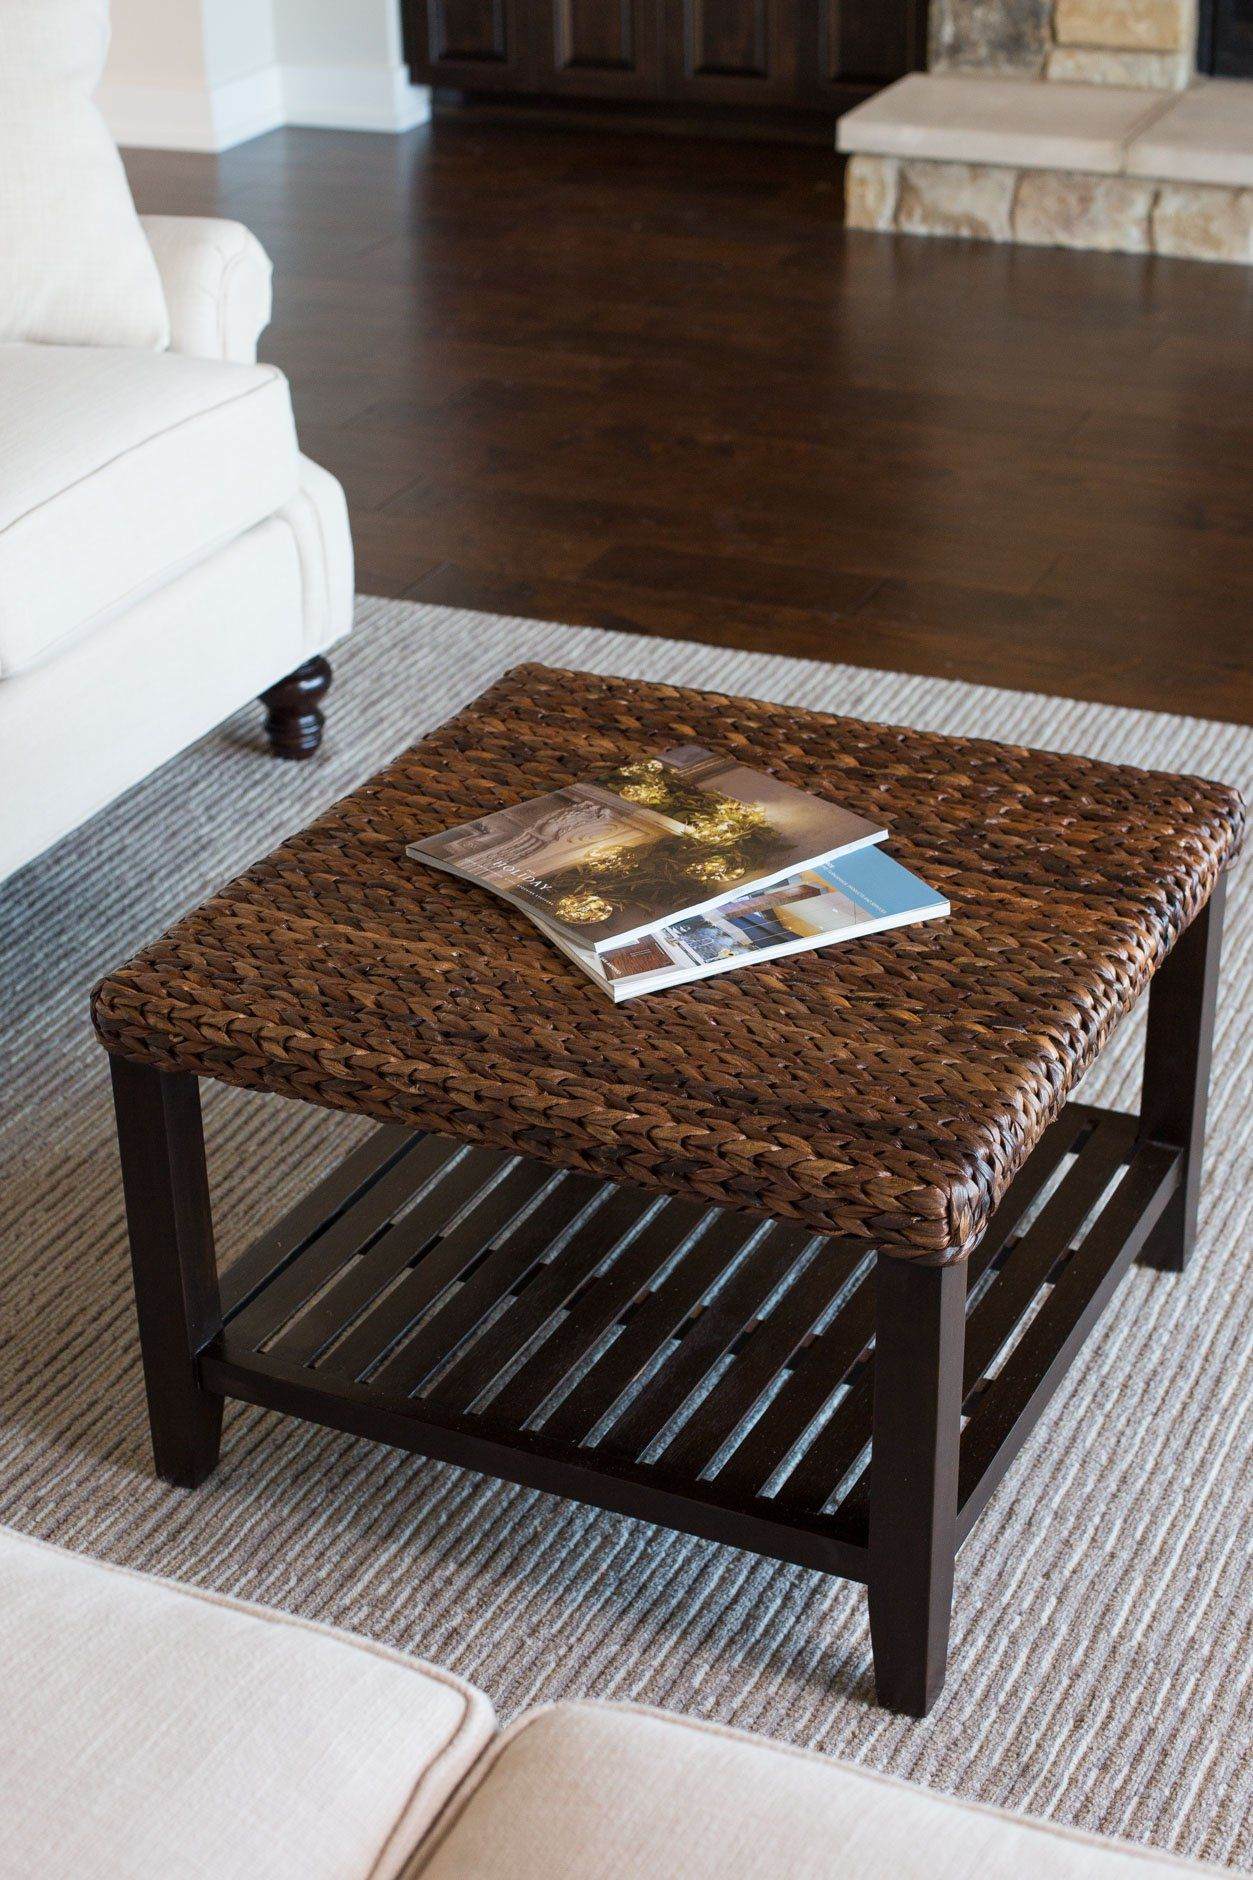 Birdrock Home Woven Seagrass Coffee Table Mahogany Wood Frame Fully Assembled You Can Get Addit Wicker Coffee Table Coffee Table Traditional Coffee Table [ 1880 x 1253 Pixel ]